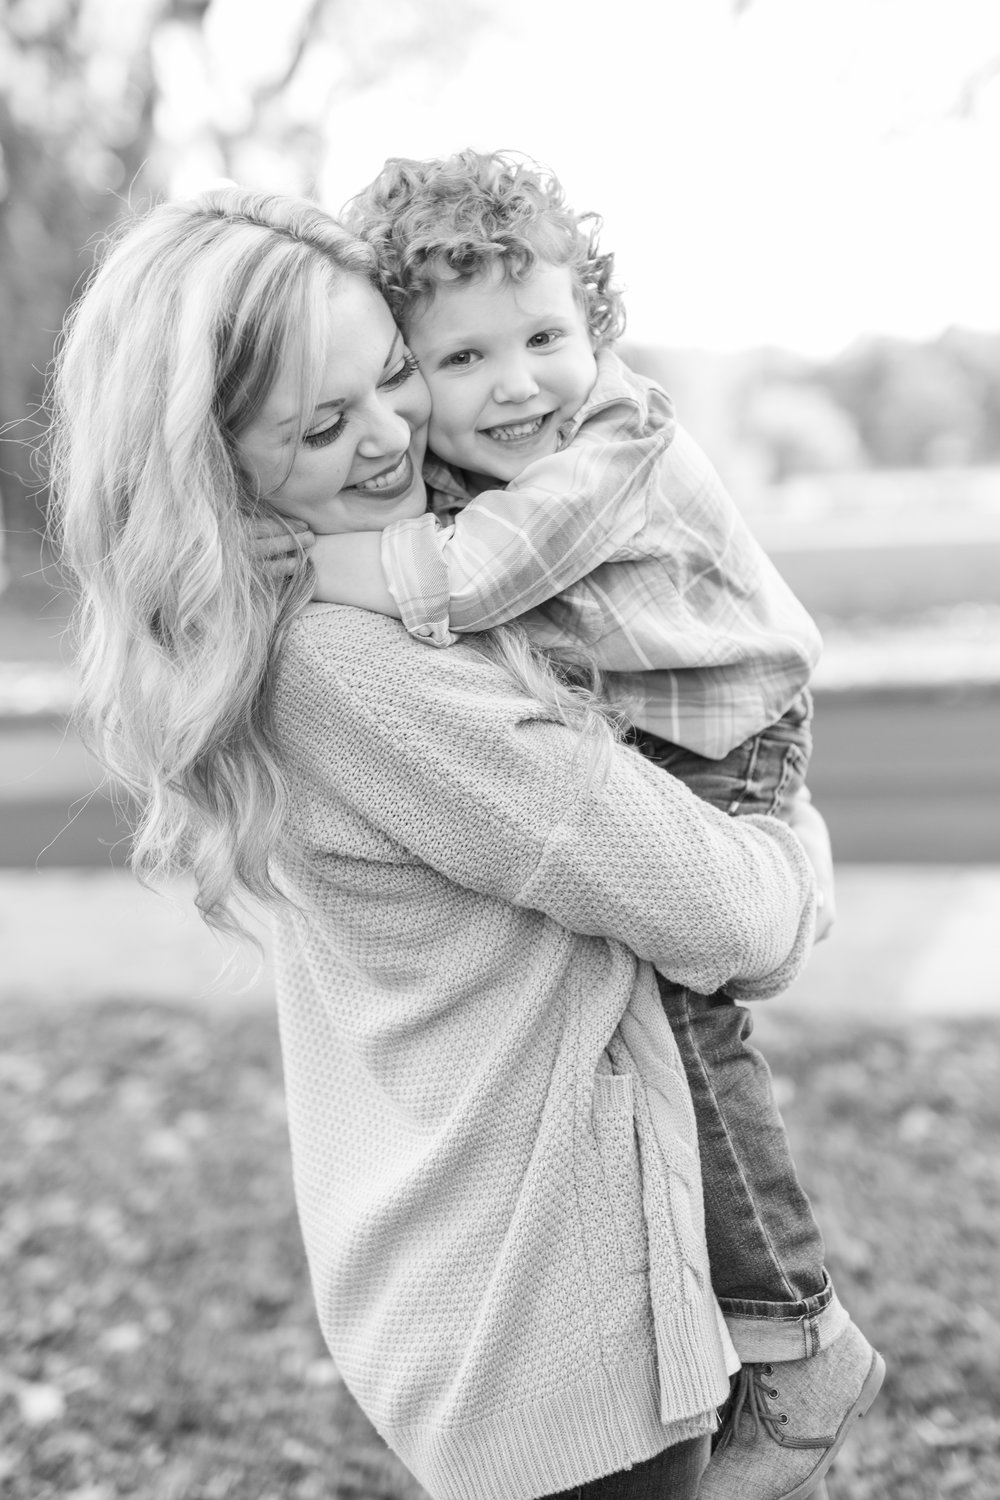 Lynchburg VA Family Photographer || Central VA Family and Wedding Photographer || www.ashleyeiban.com